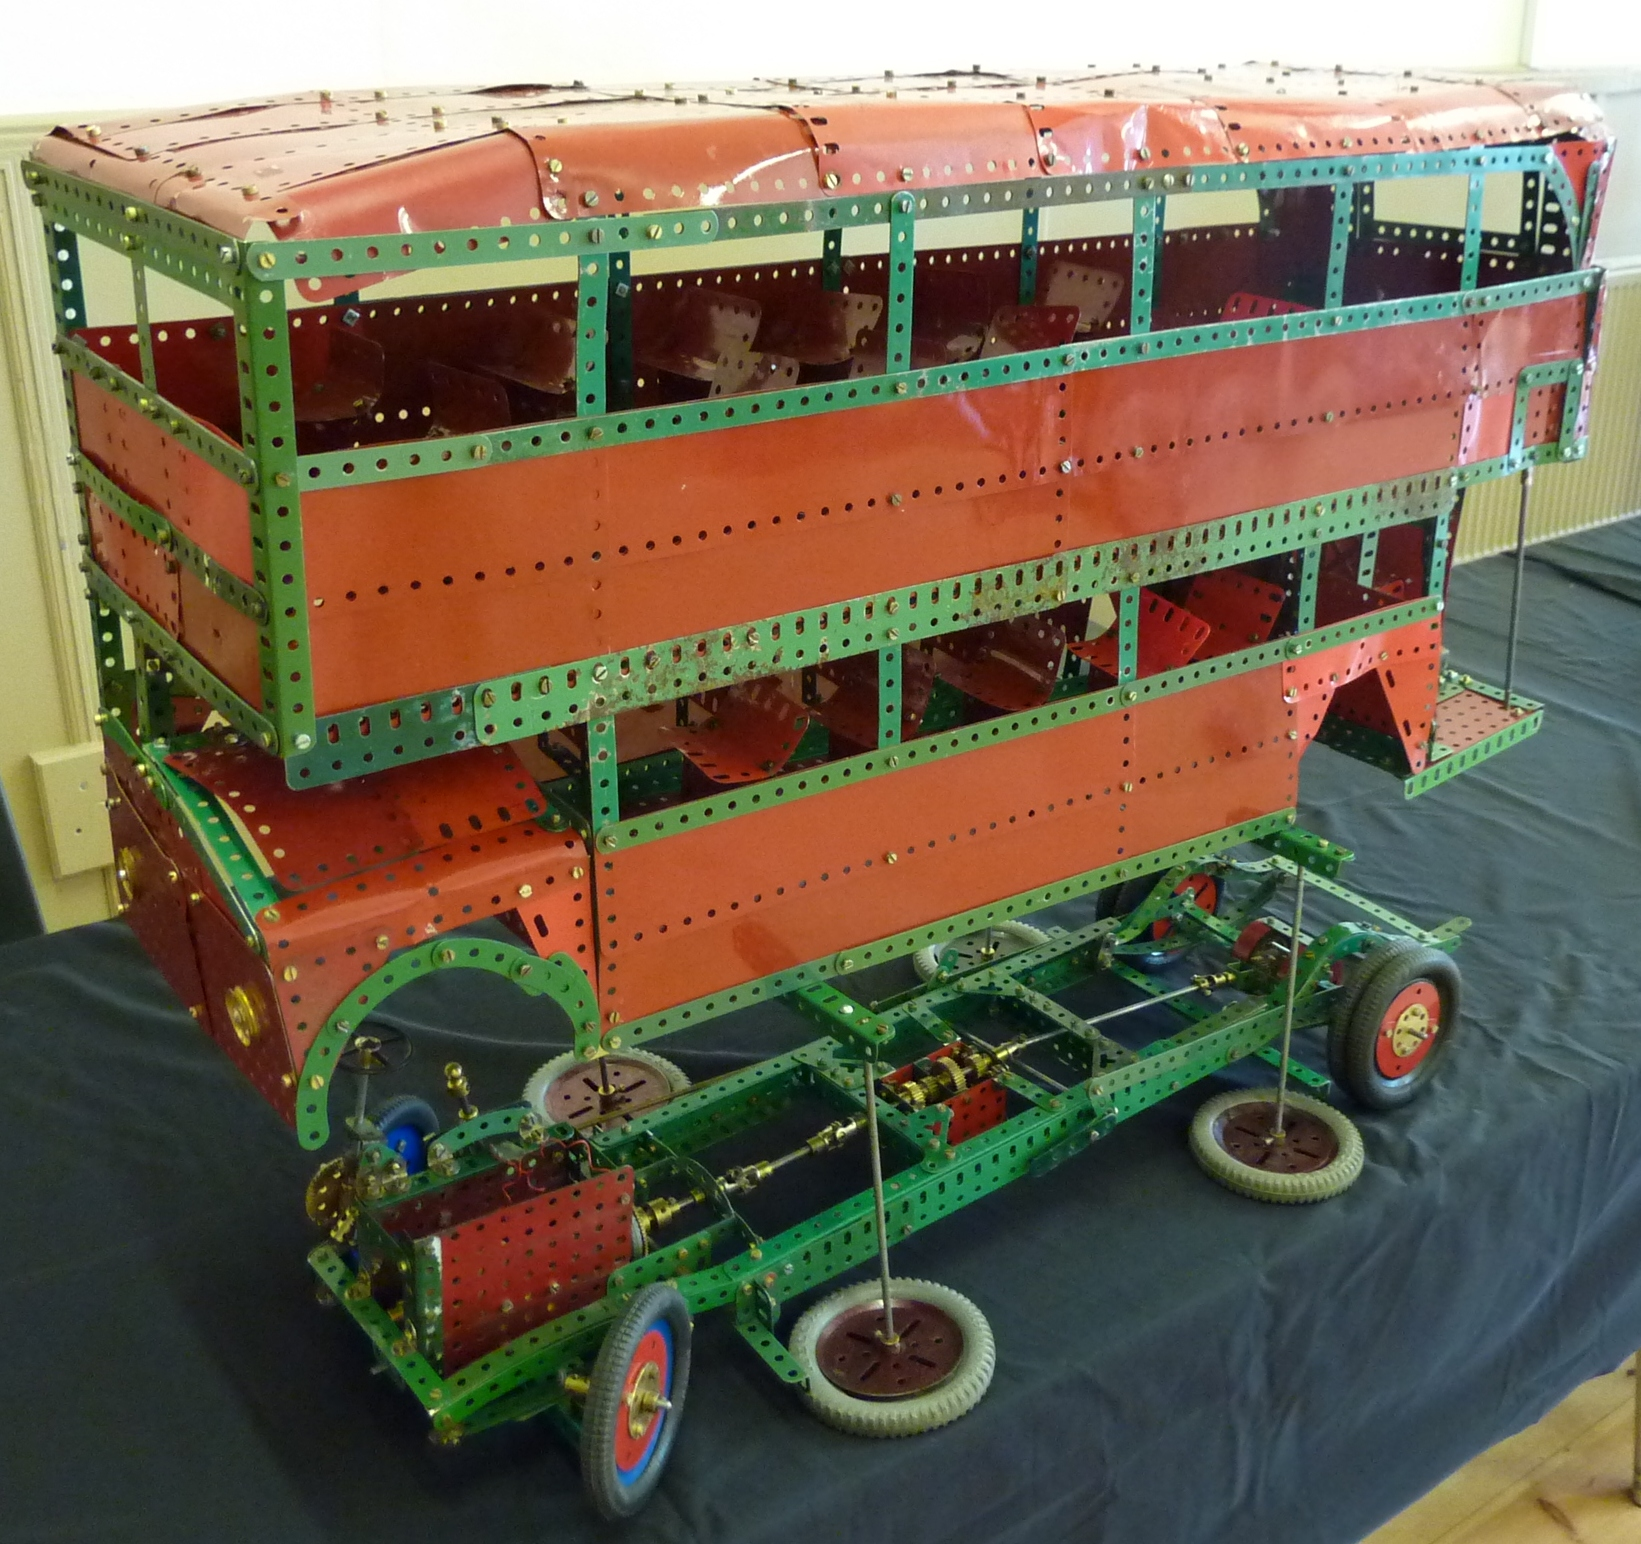 Routemaster Bus by Brian Bowditch 0410